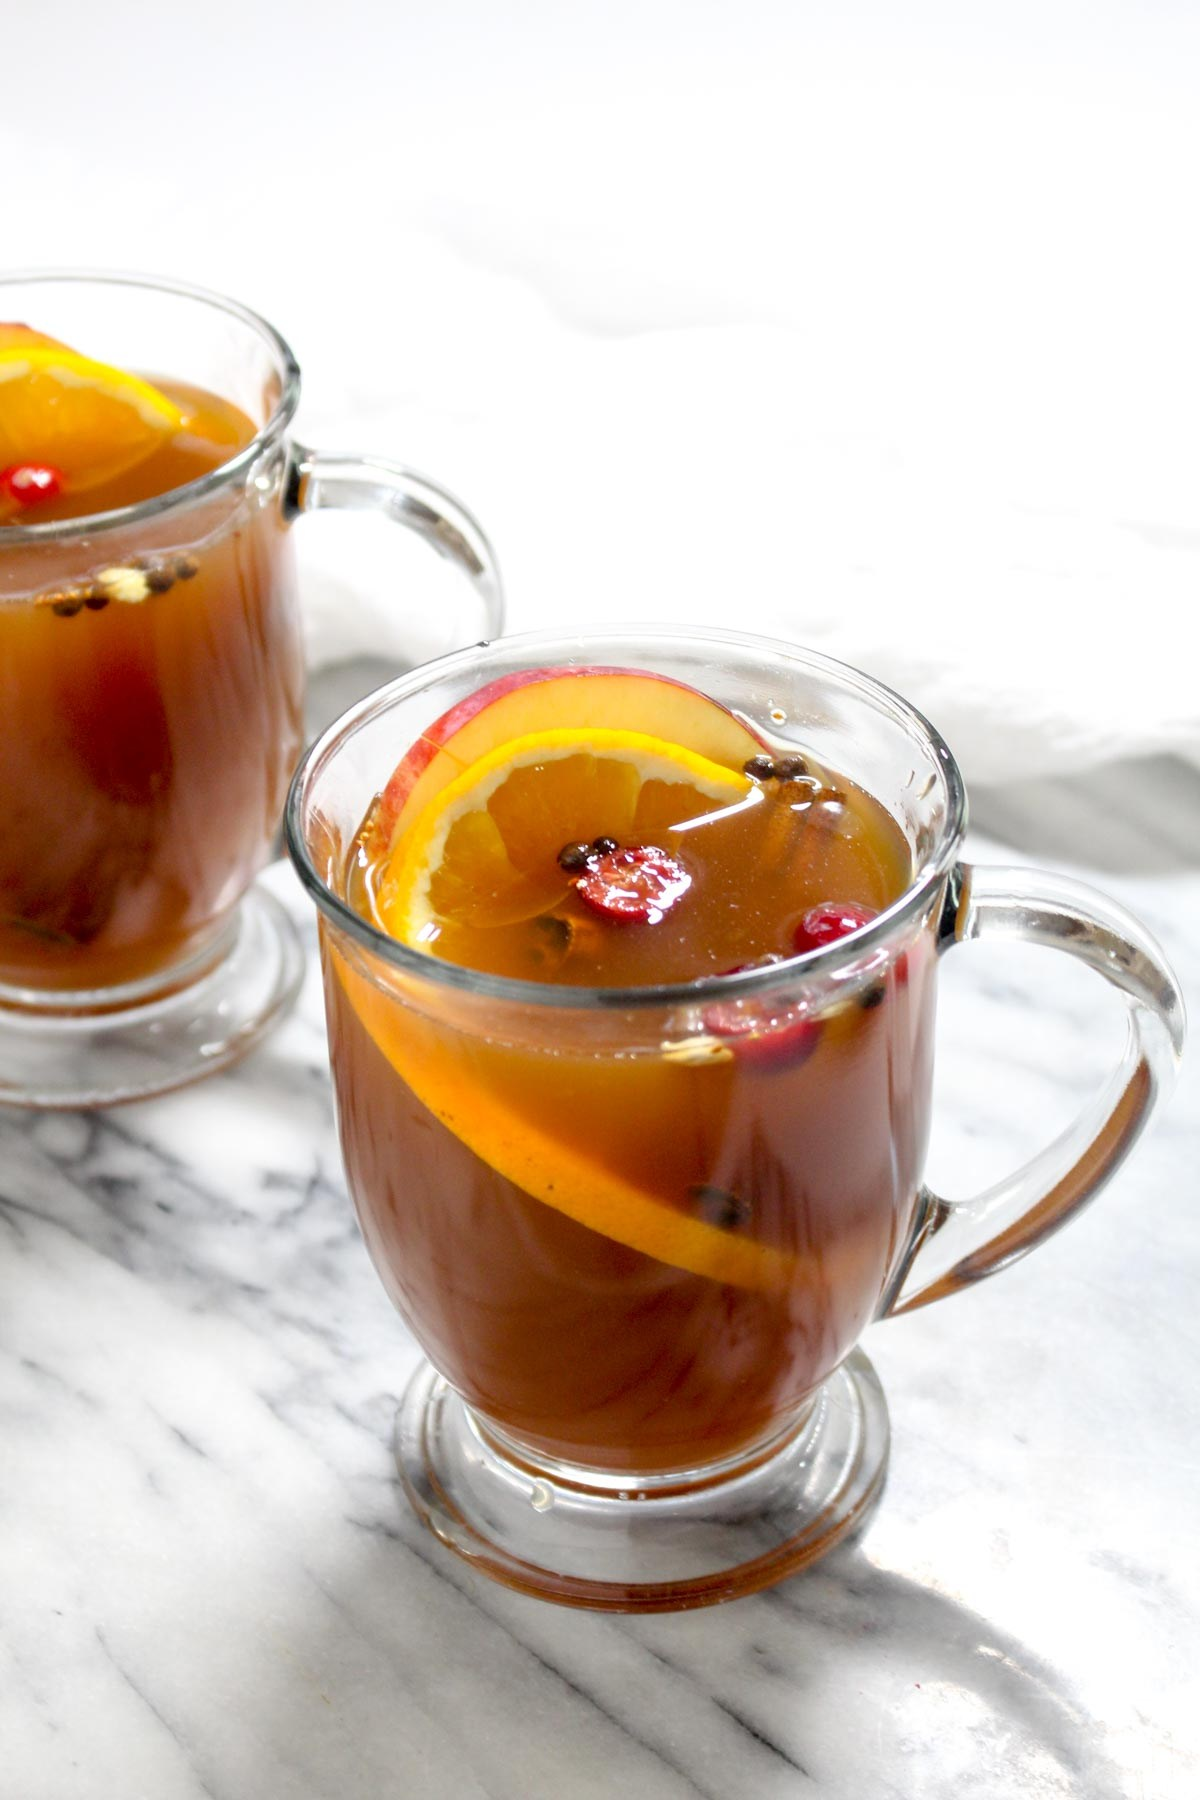 Best Christmas Food and Drink: Hot apple cider